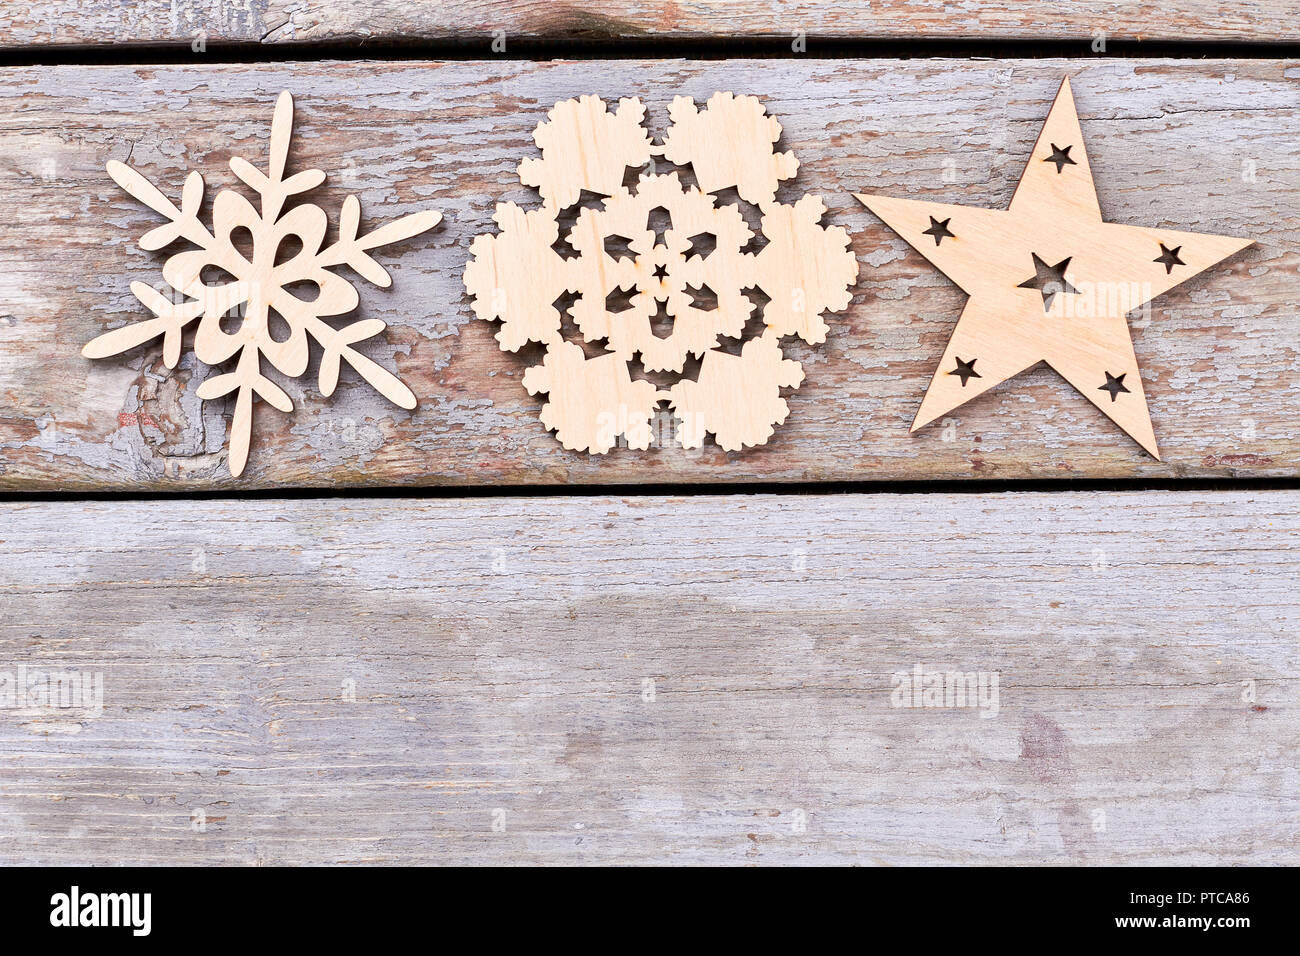 cut out wooden christmas decoration figures carved wooden snowflakes and star on old rustic wooden background copy space